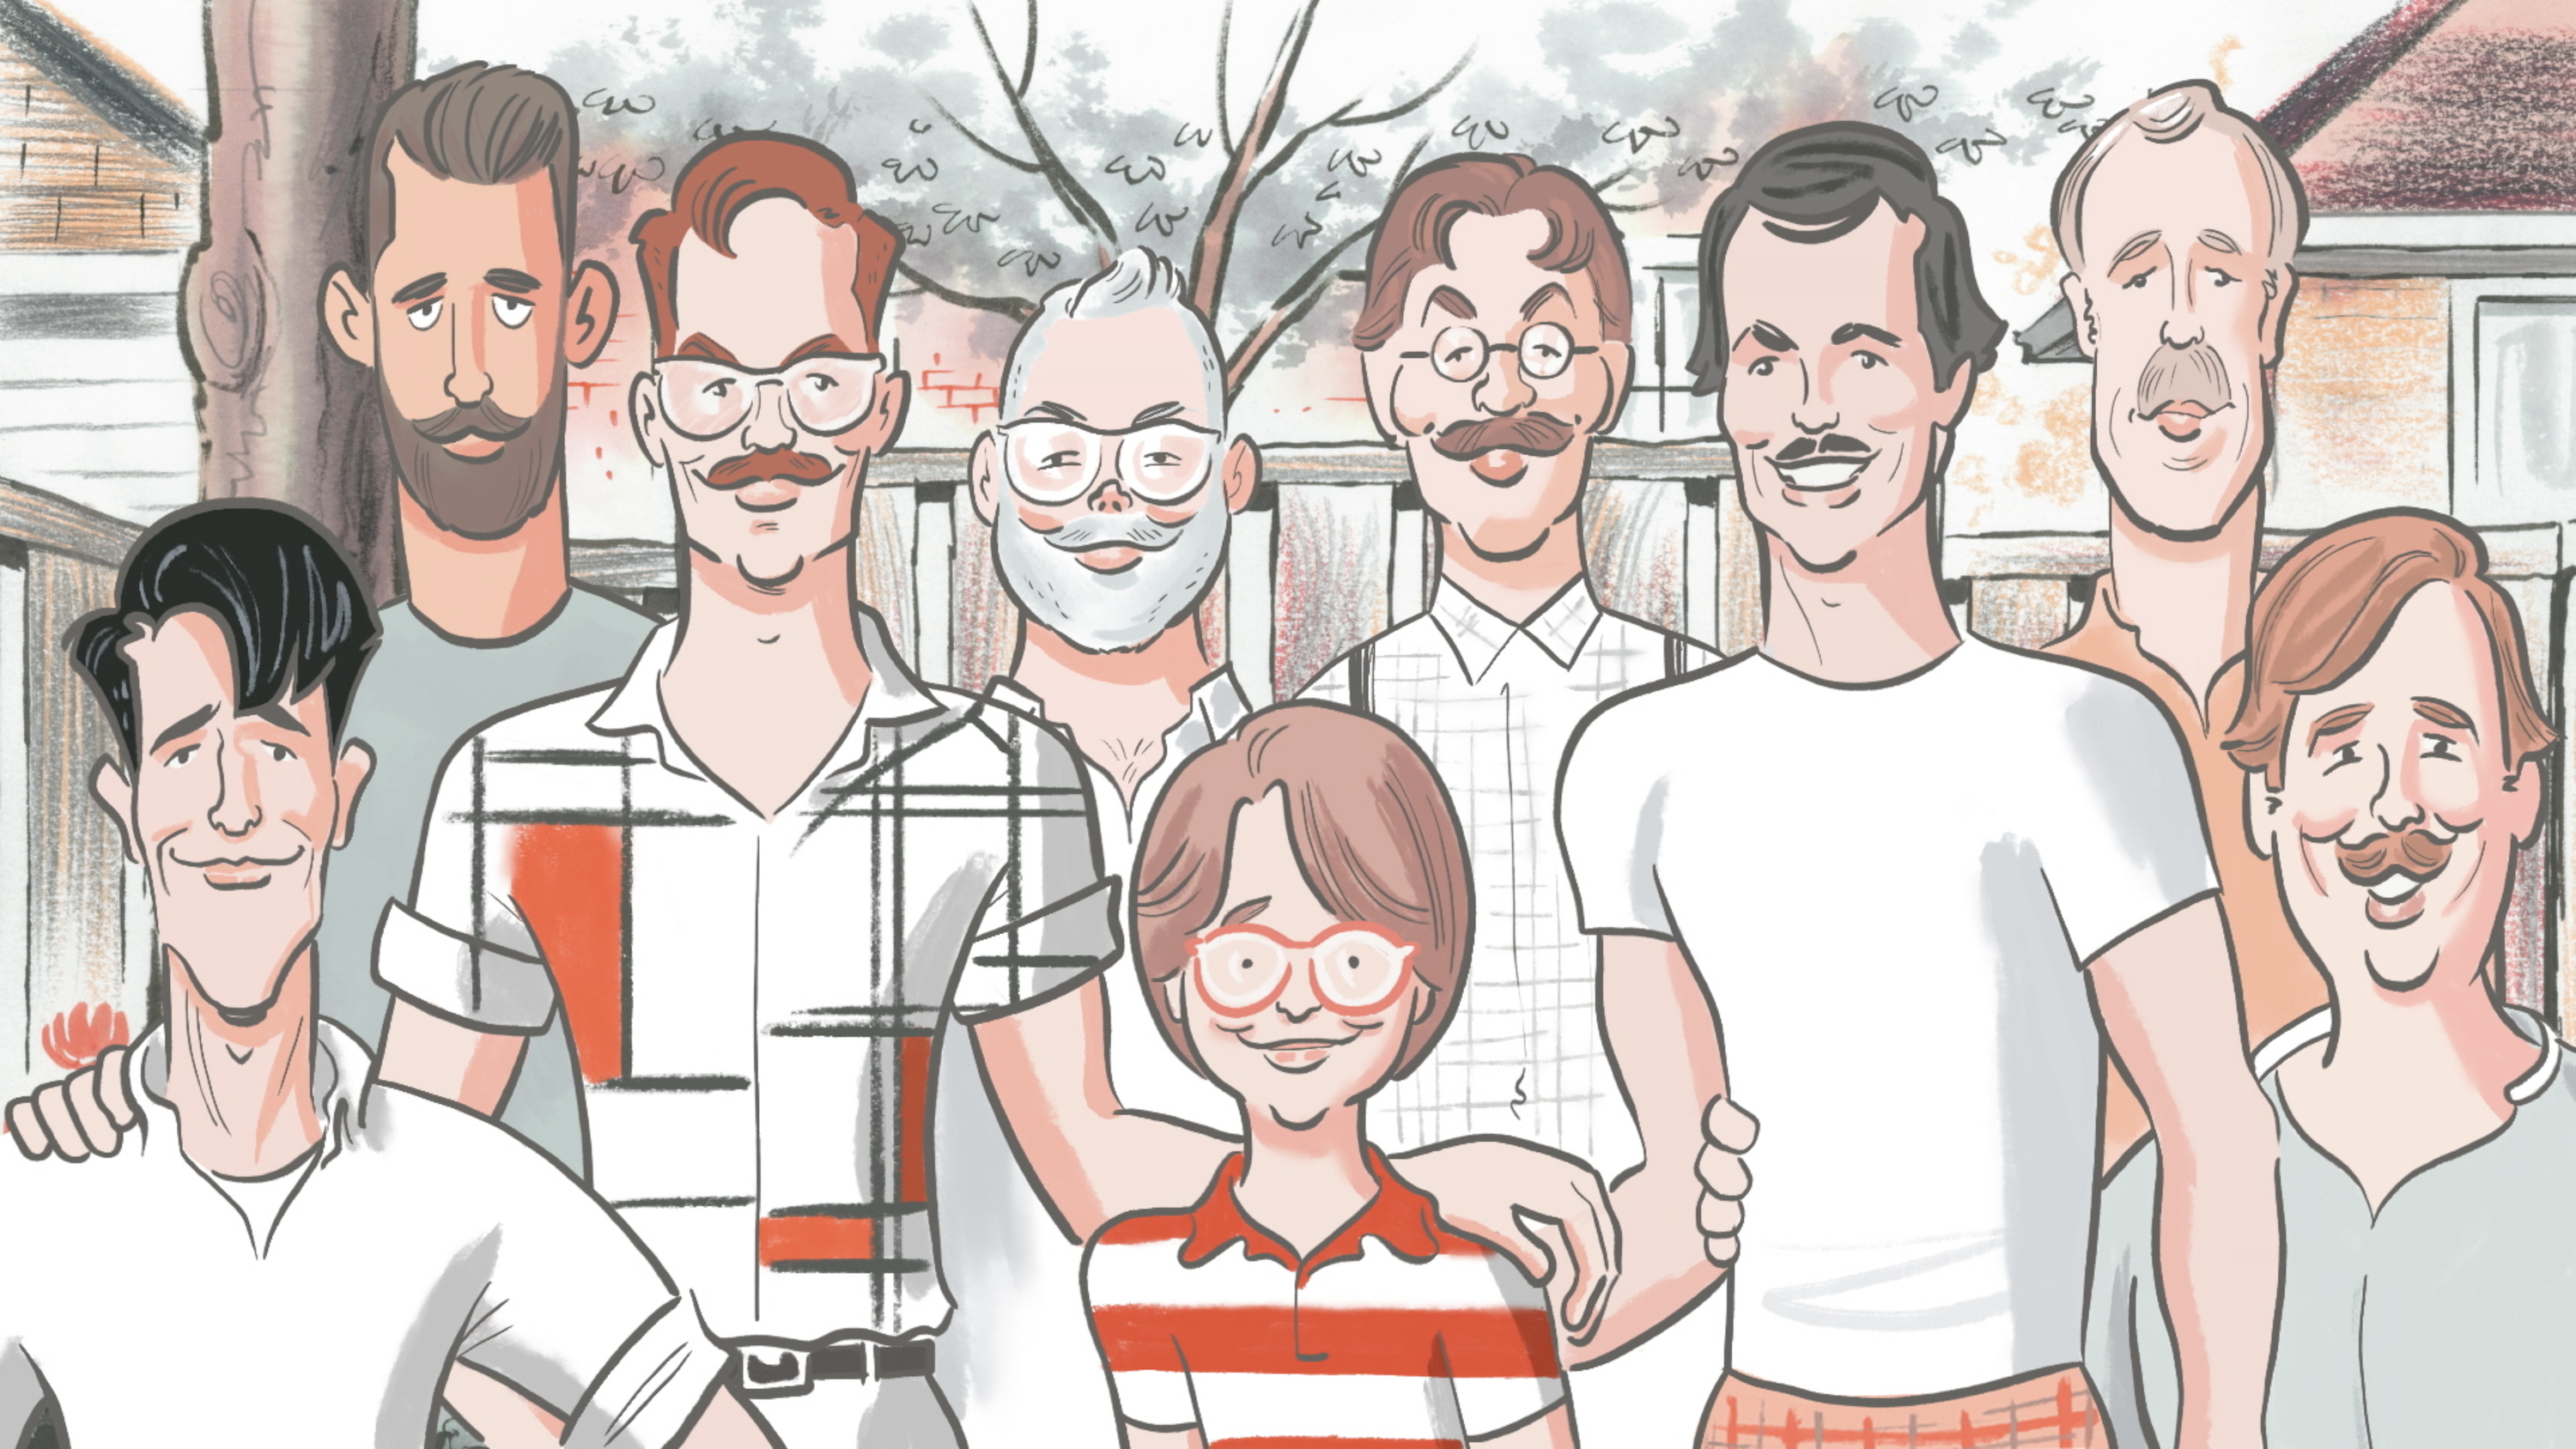 An illustration of a young white boy with a round haircut, big red glasses, and a red-and-white striped shirt, surrounded by eight white men in front of a picket fence. They are all smiling at the viewer.